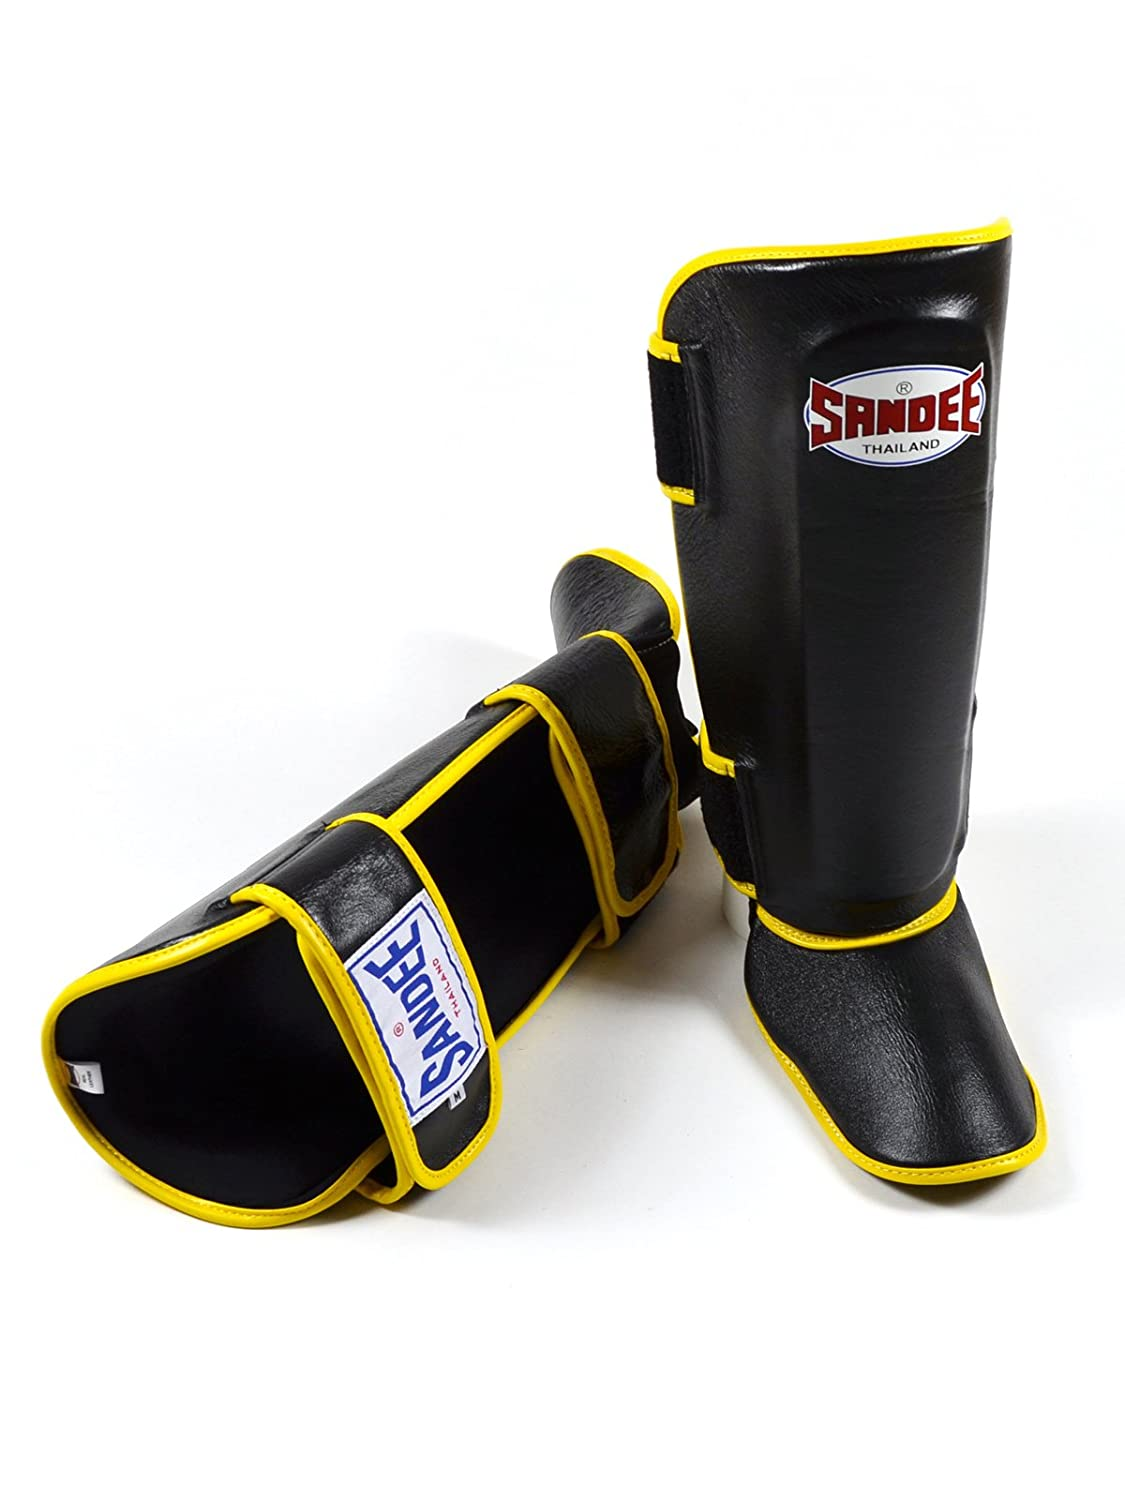 Sandee Authentic Leather Boot Shinguards